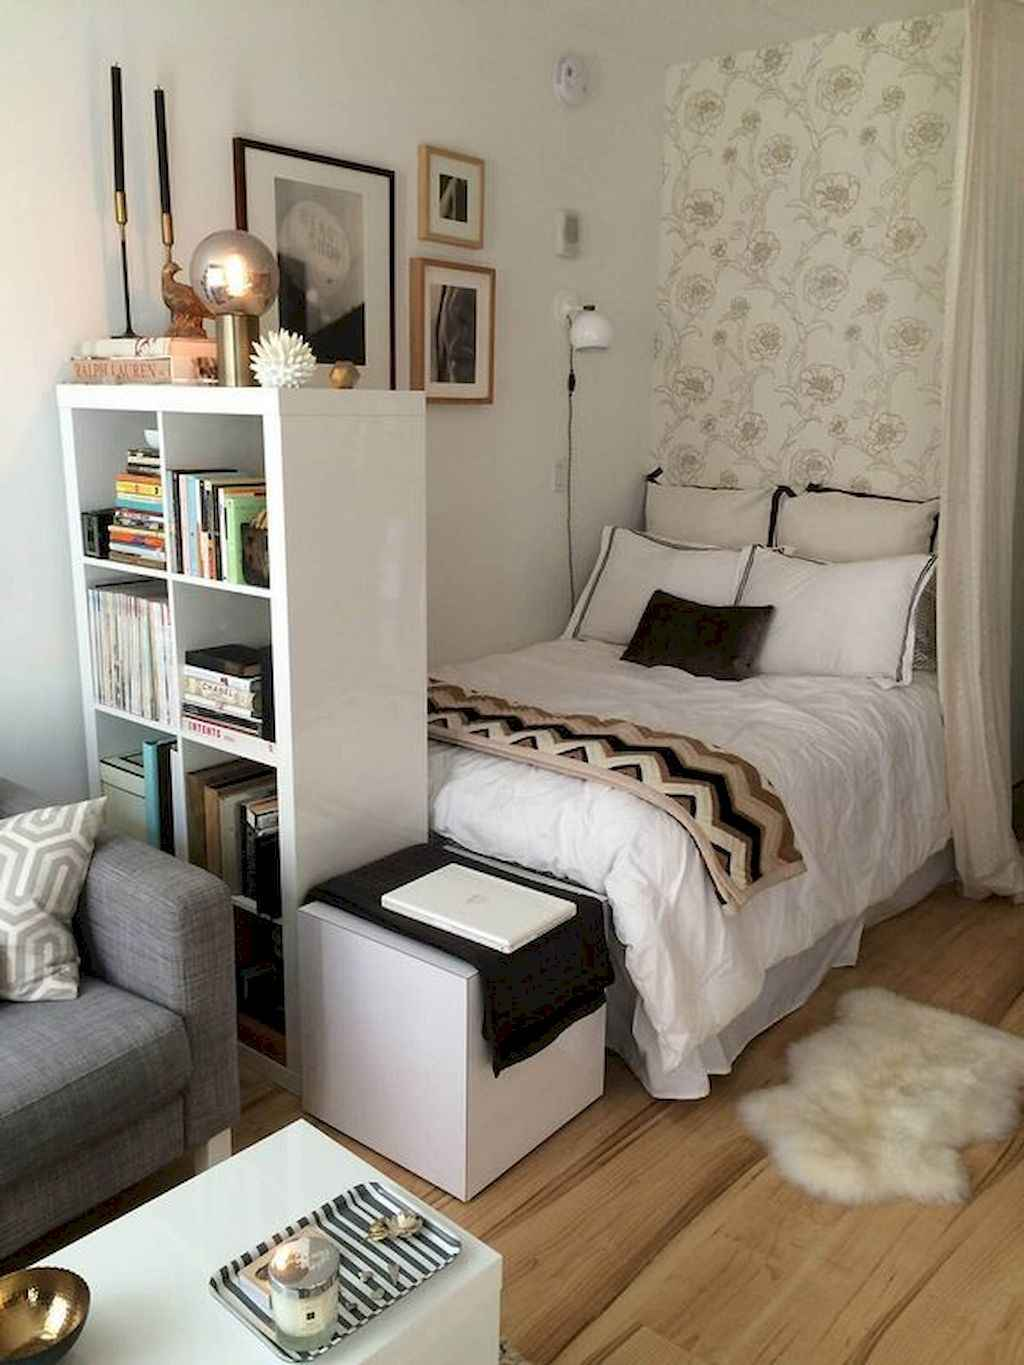 Cozy apartment decorating ideas on a budget (85)